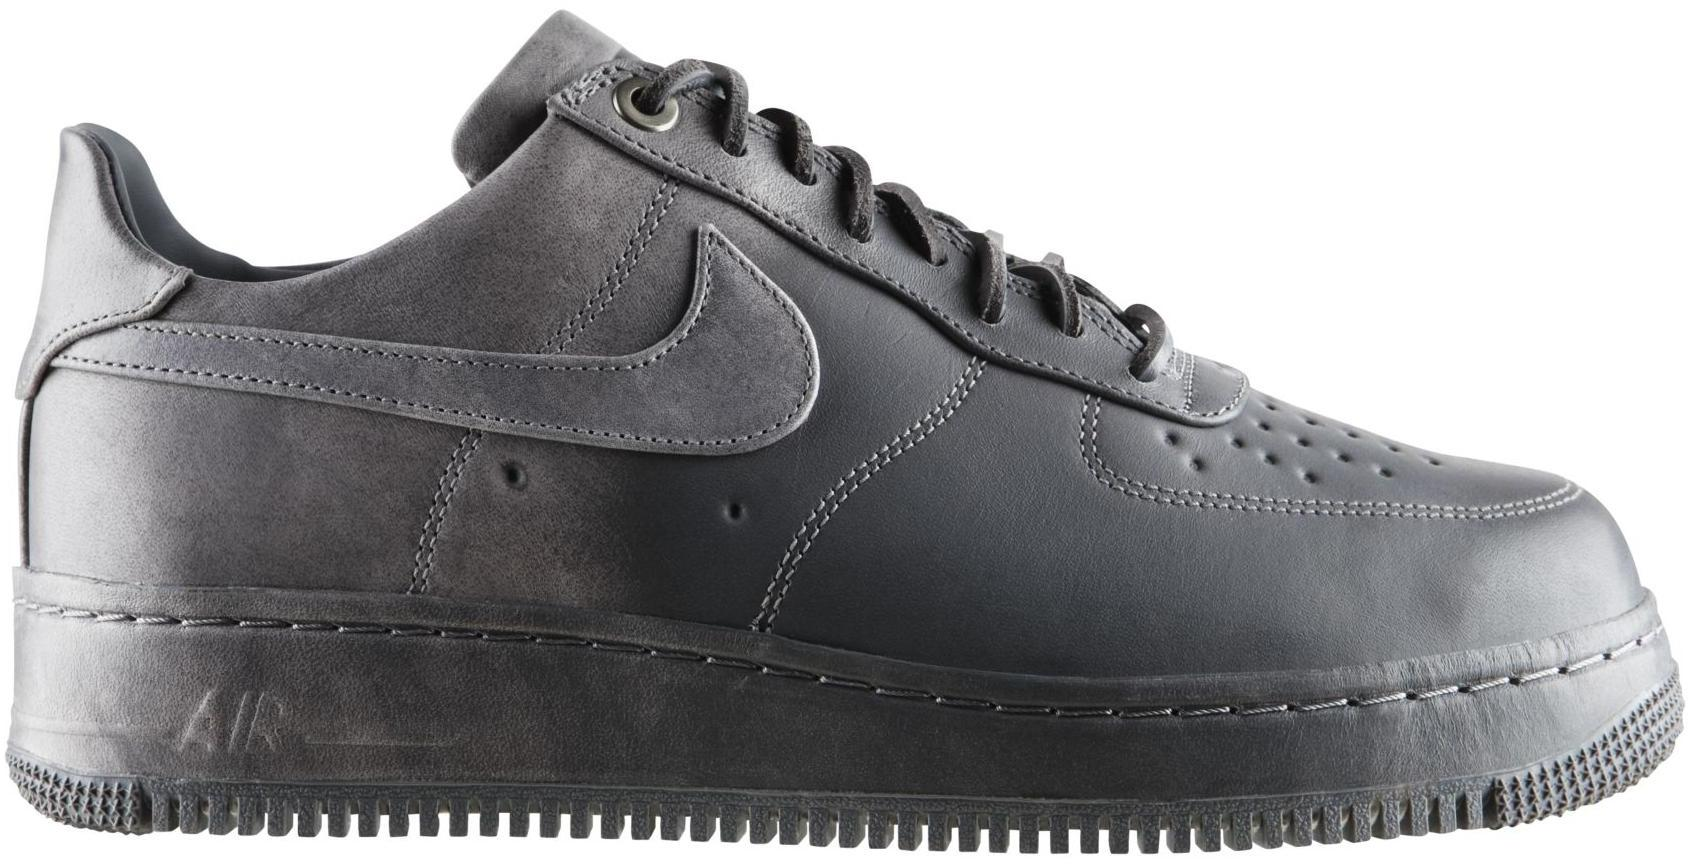 Nike Air Force 1 Low Pigalle Cool Grey - 669916-090